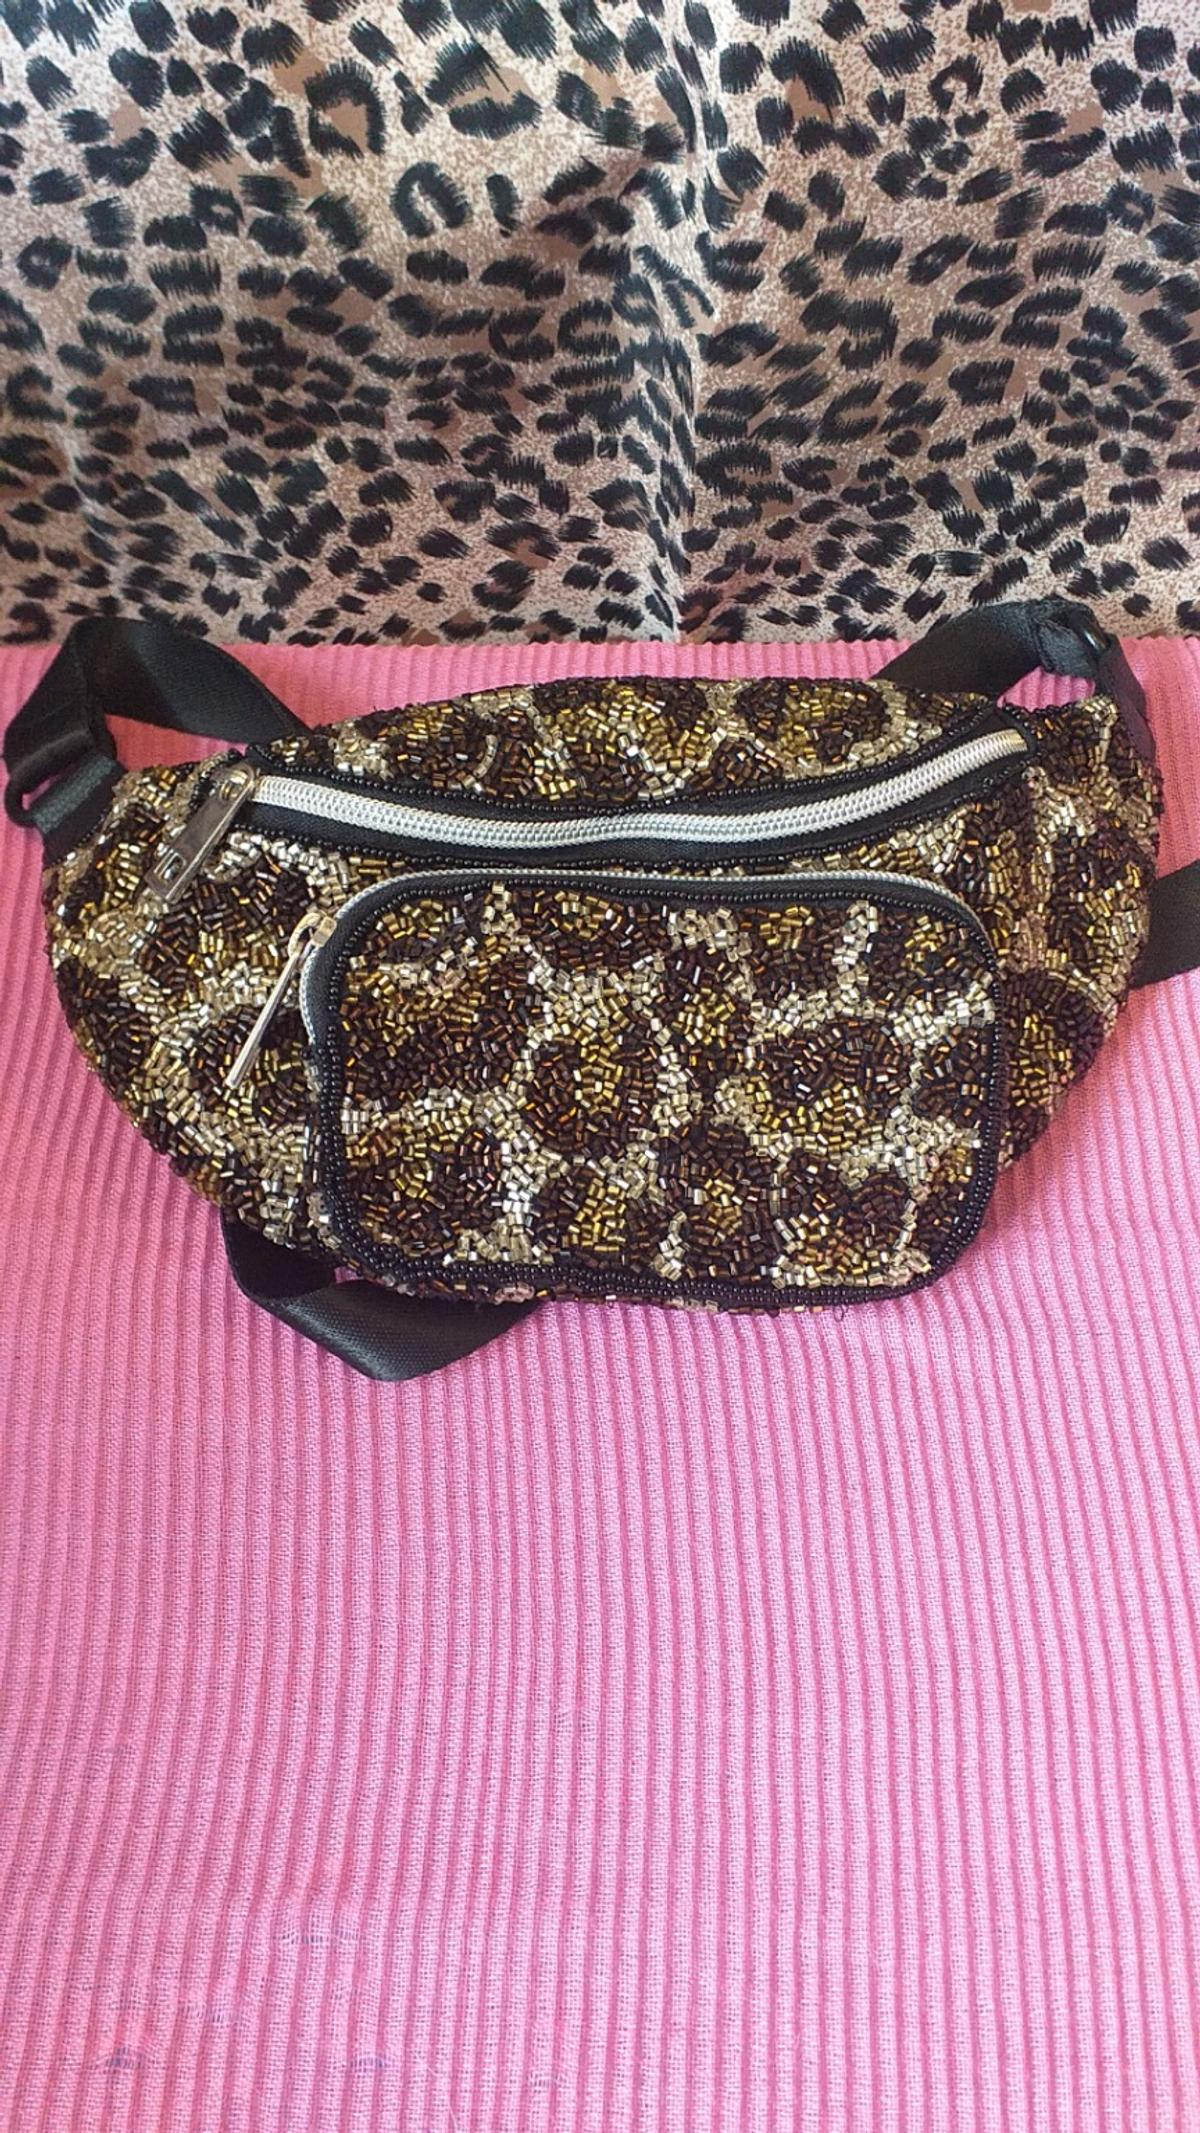 6995d7939d4f New Leopard beaded Sequin Bumbag in CR4 Merton for £5.00 for sale ...